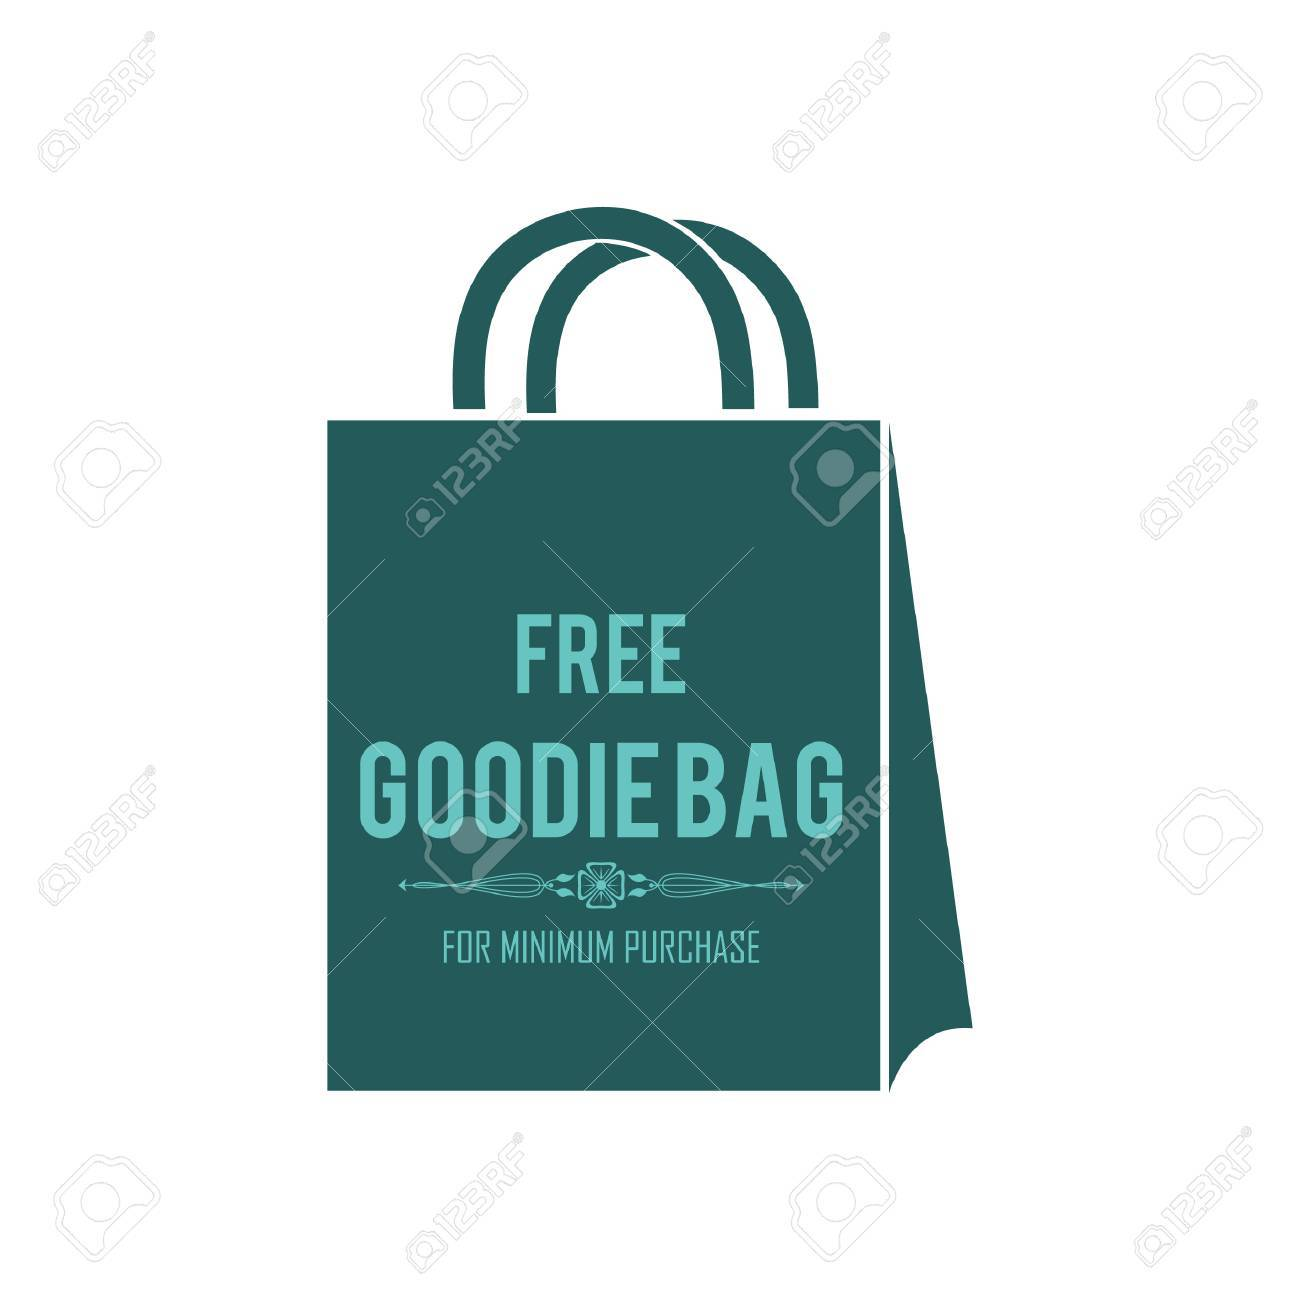 free goodie bag label.